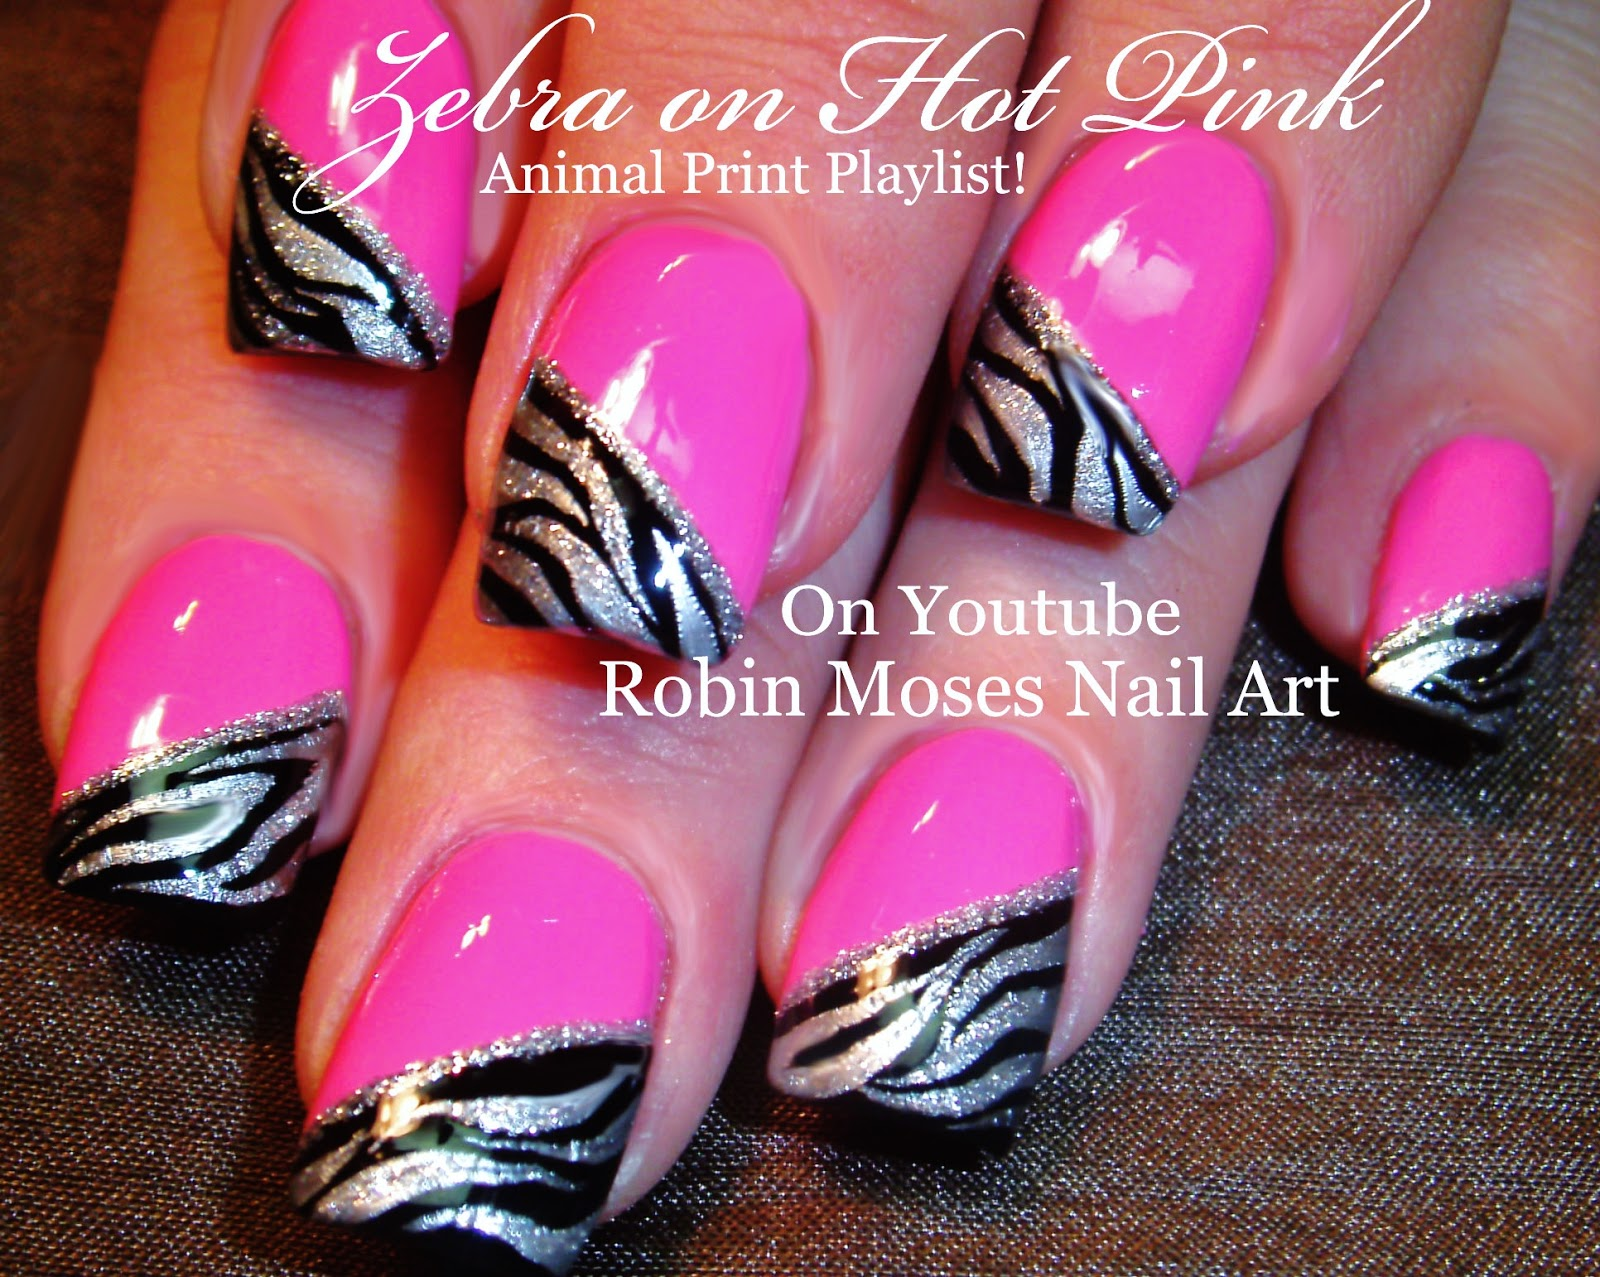 Robin moses nail art hot pink nails with black and silver zebra hot pink nails with black and silver zebra animal print nails zebra print nail art zebra print hot pink zebra black and silver zebra zebra nails prinsesfo Choice Image